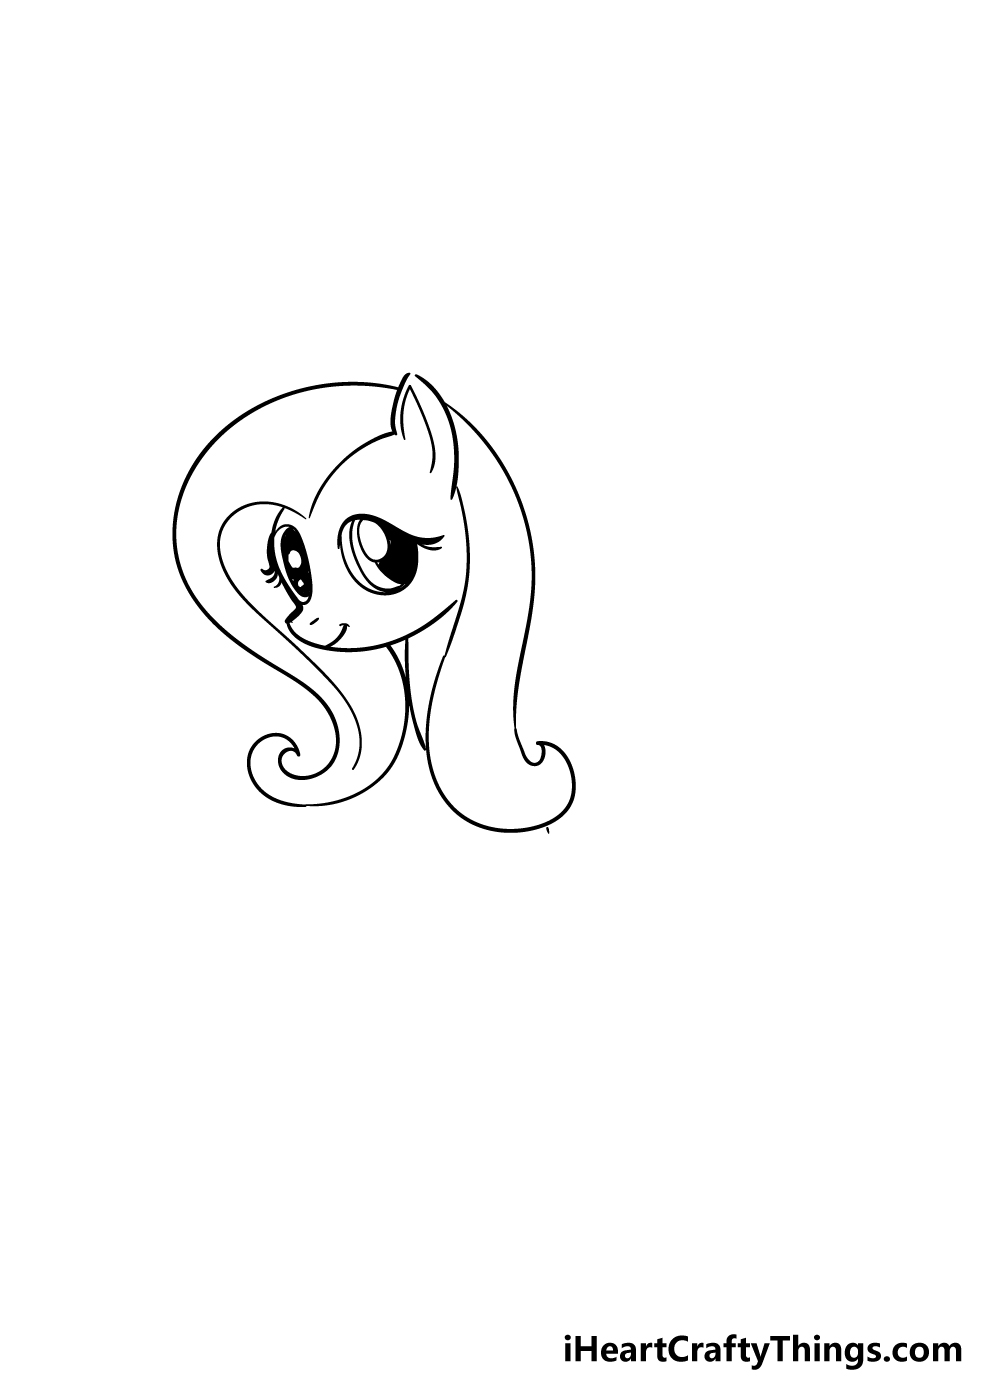 my little pony drawing step 3